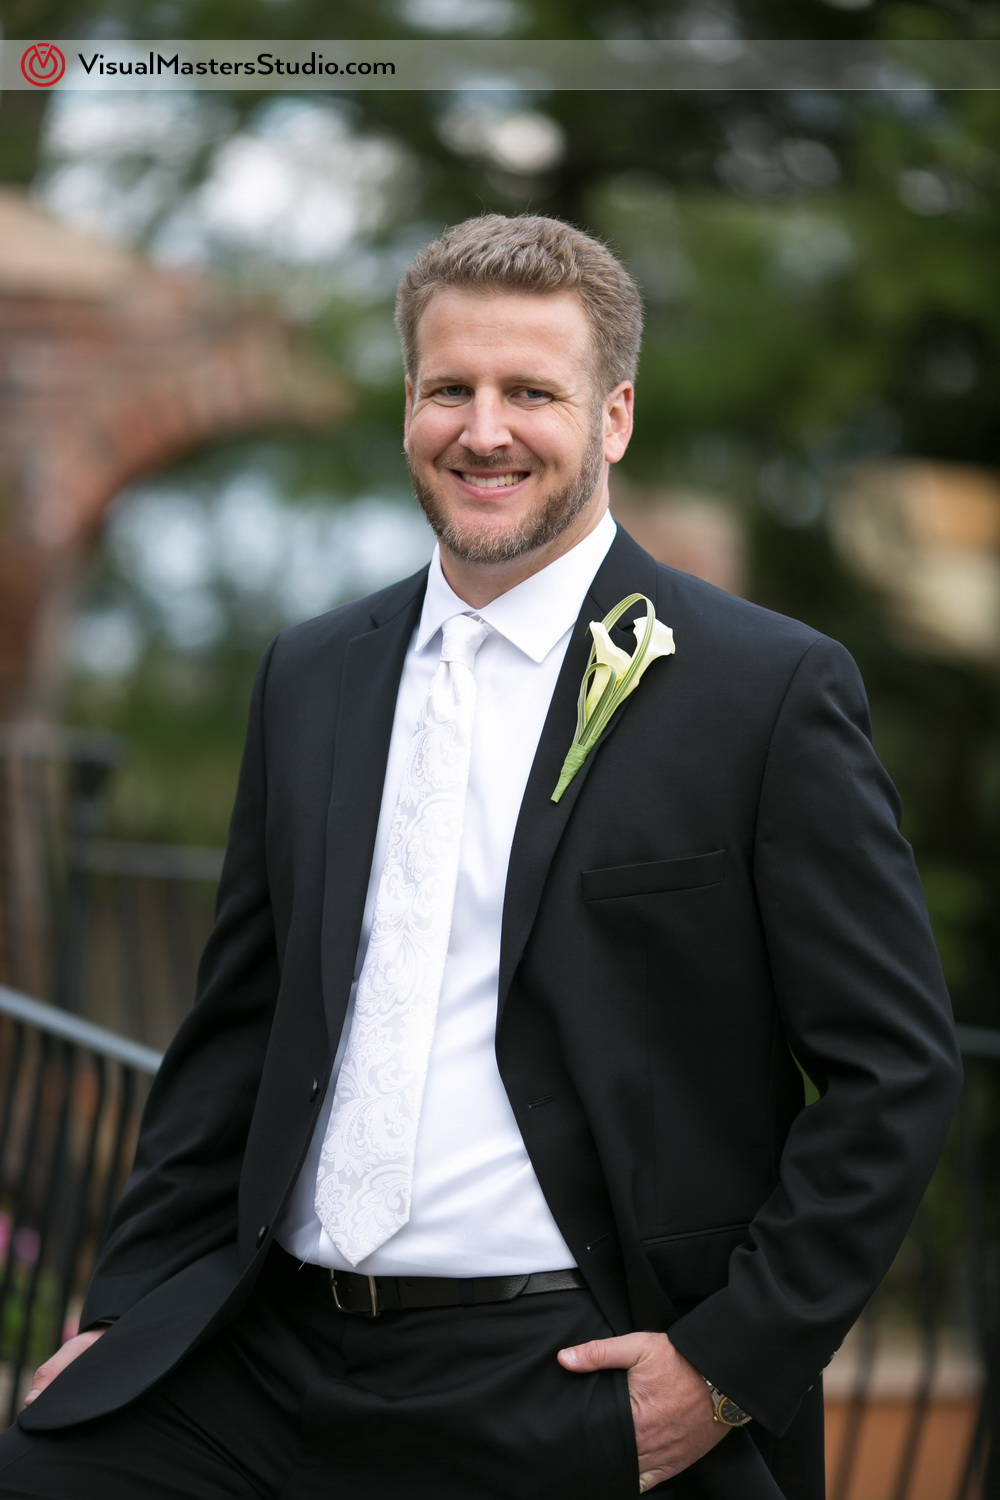 Groom Portrait by Visual Masters